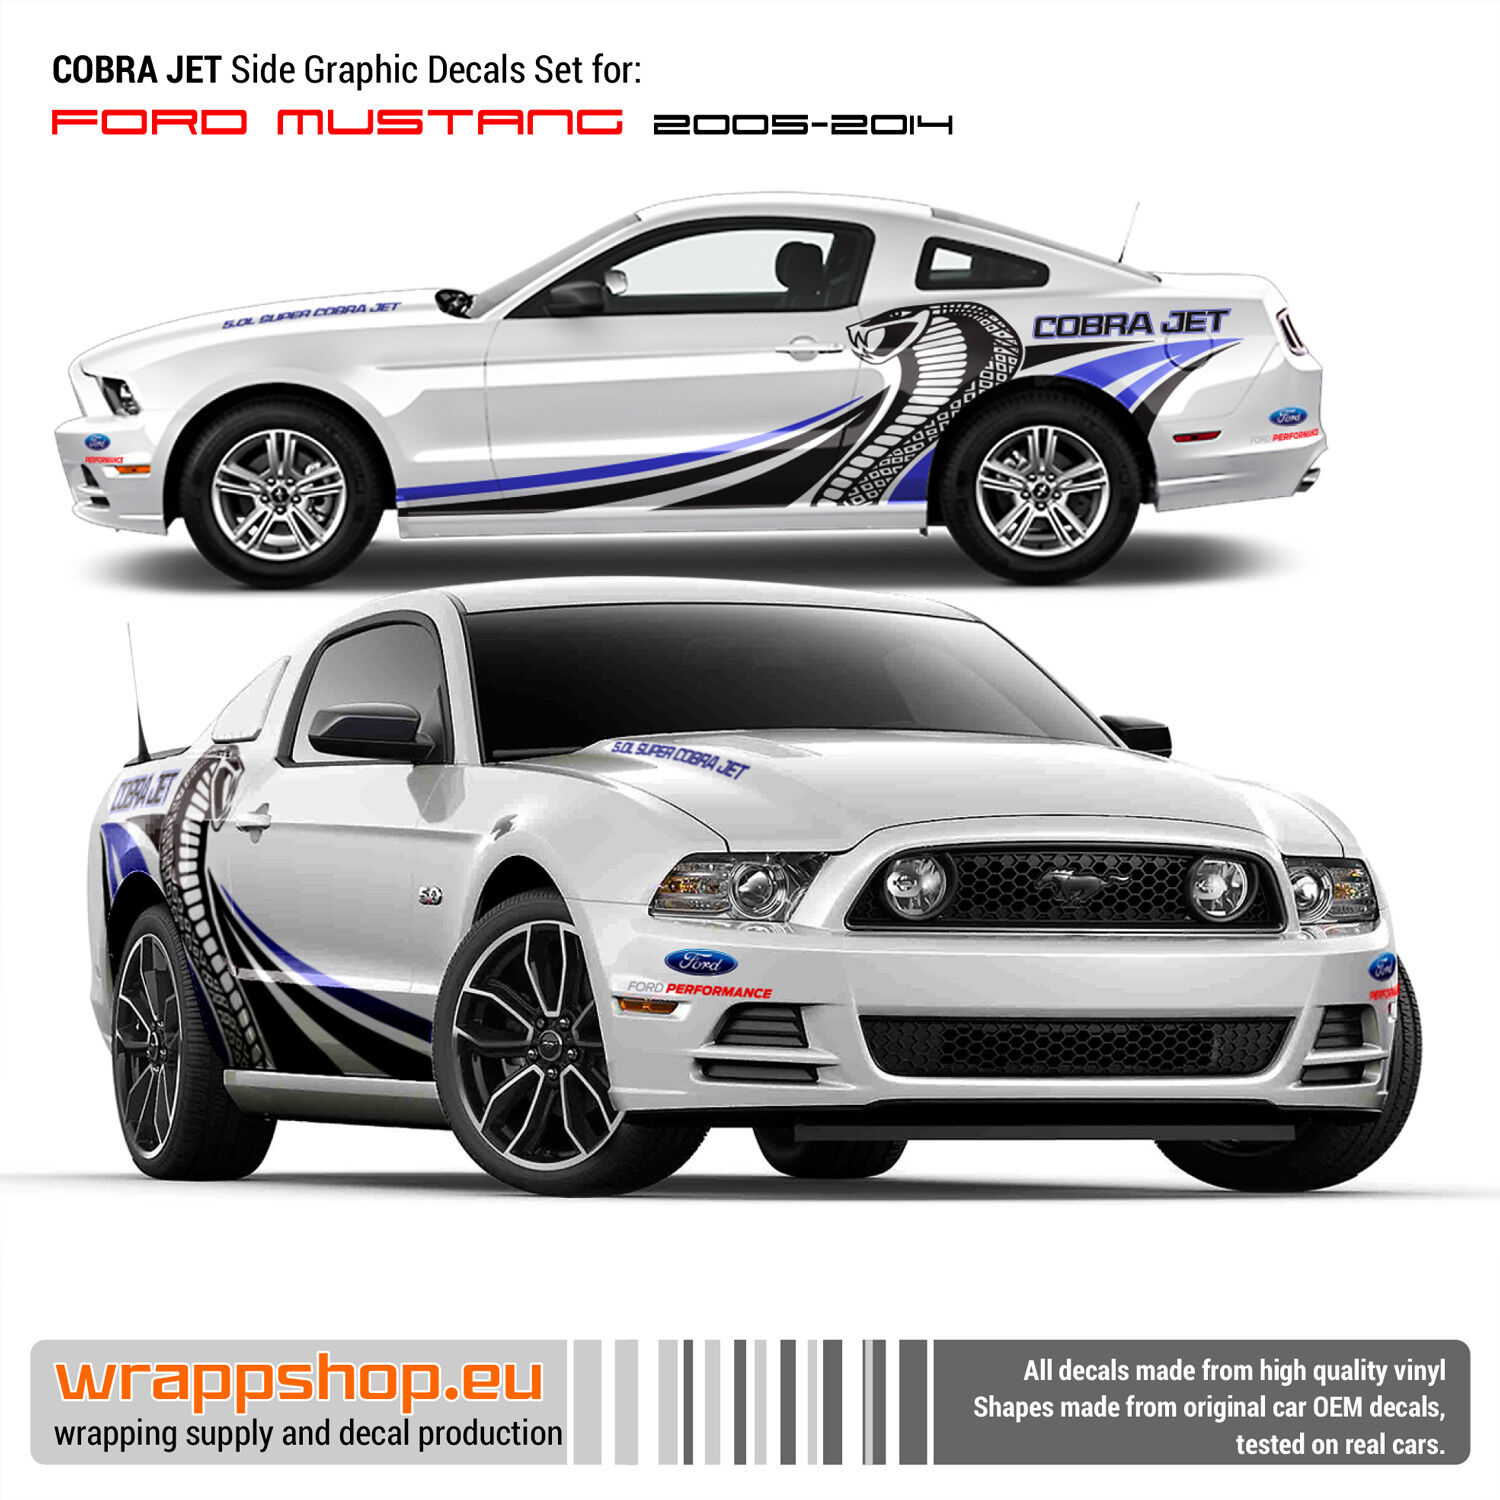 Details about cobra jet side graphic decals set for ford mustang 2005 2014 in blue black